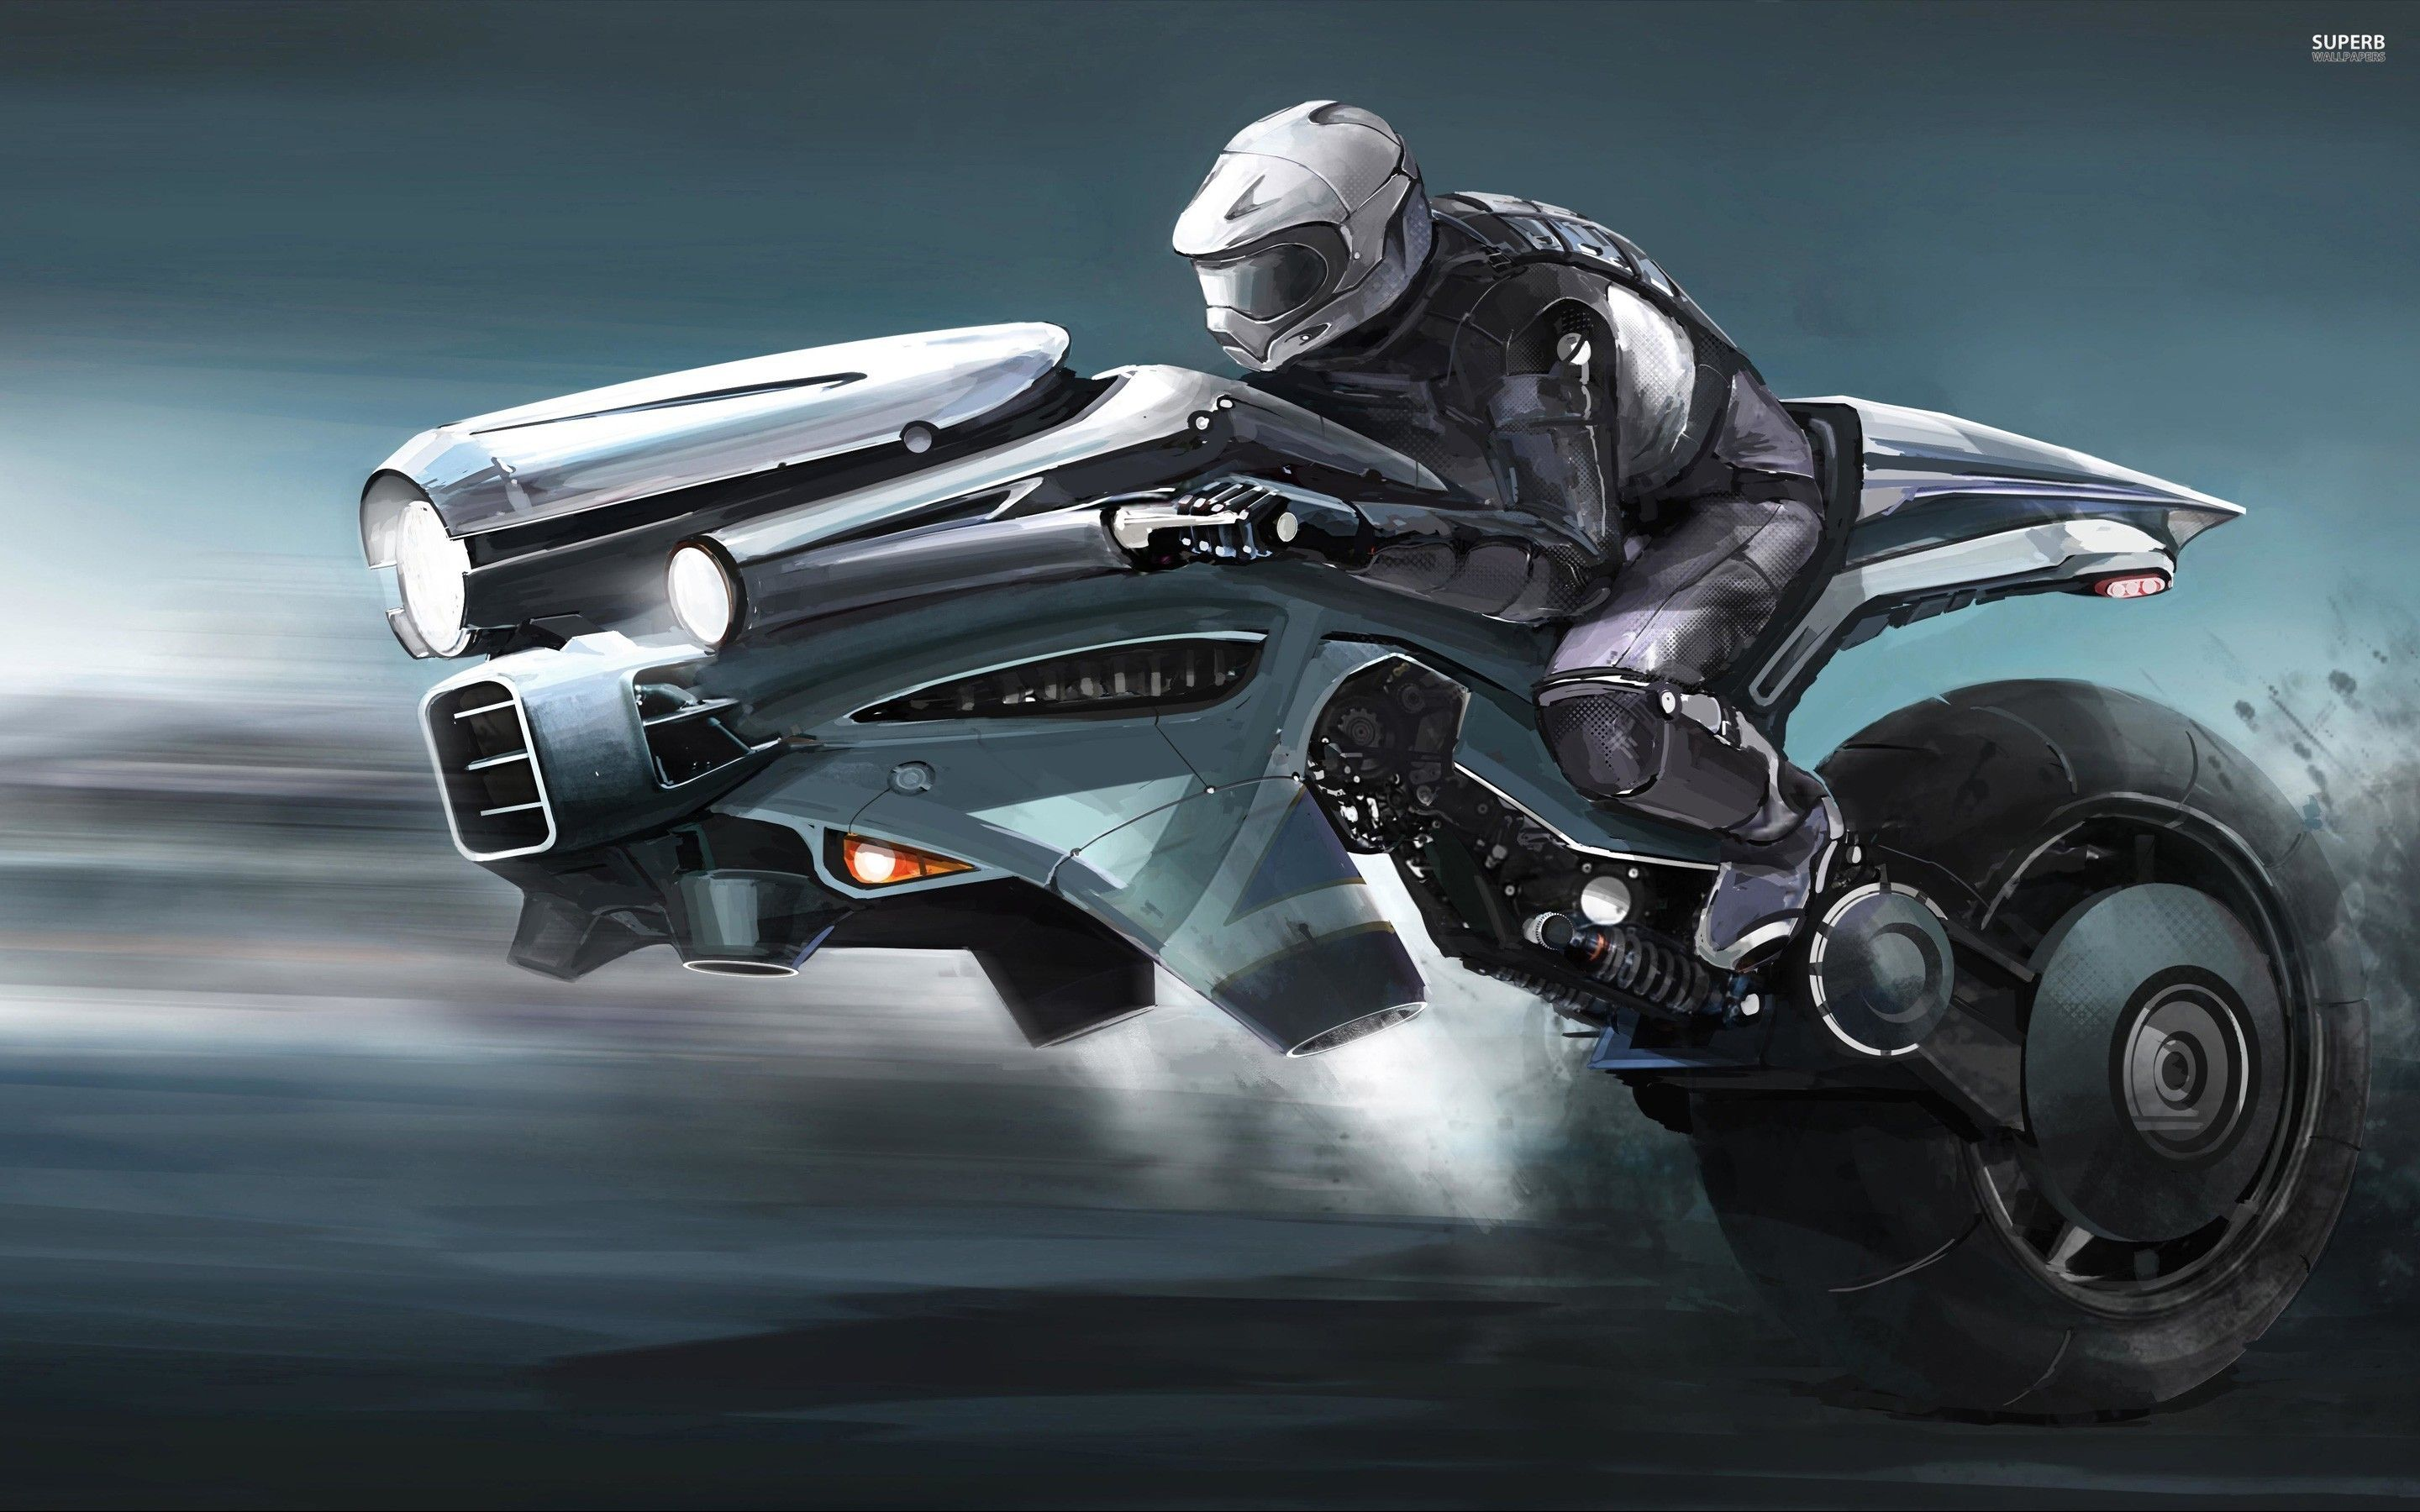 Future flying motorcycles riding the futuristic bike bike art art google sci fi